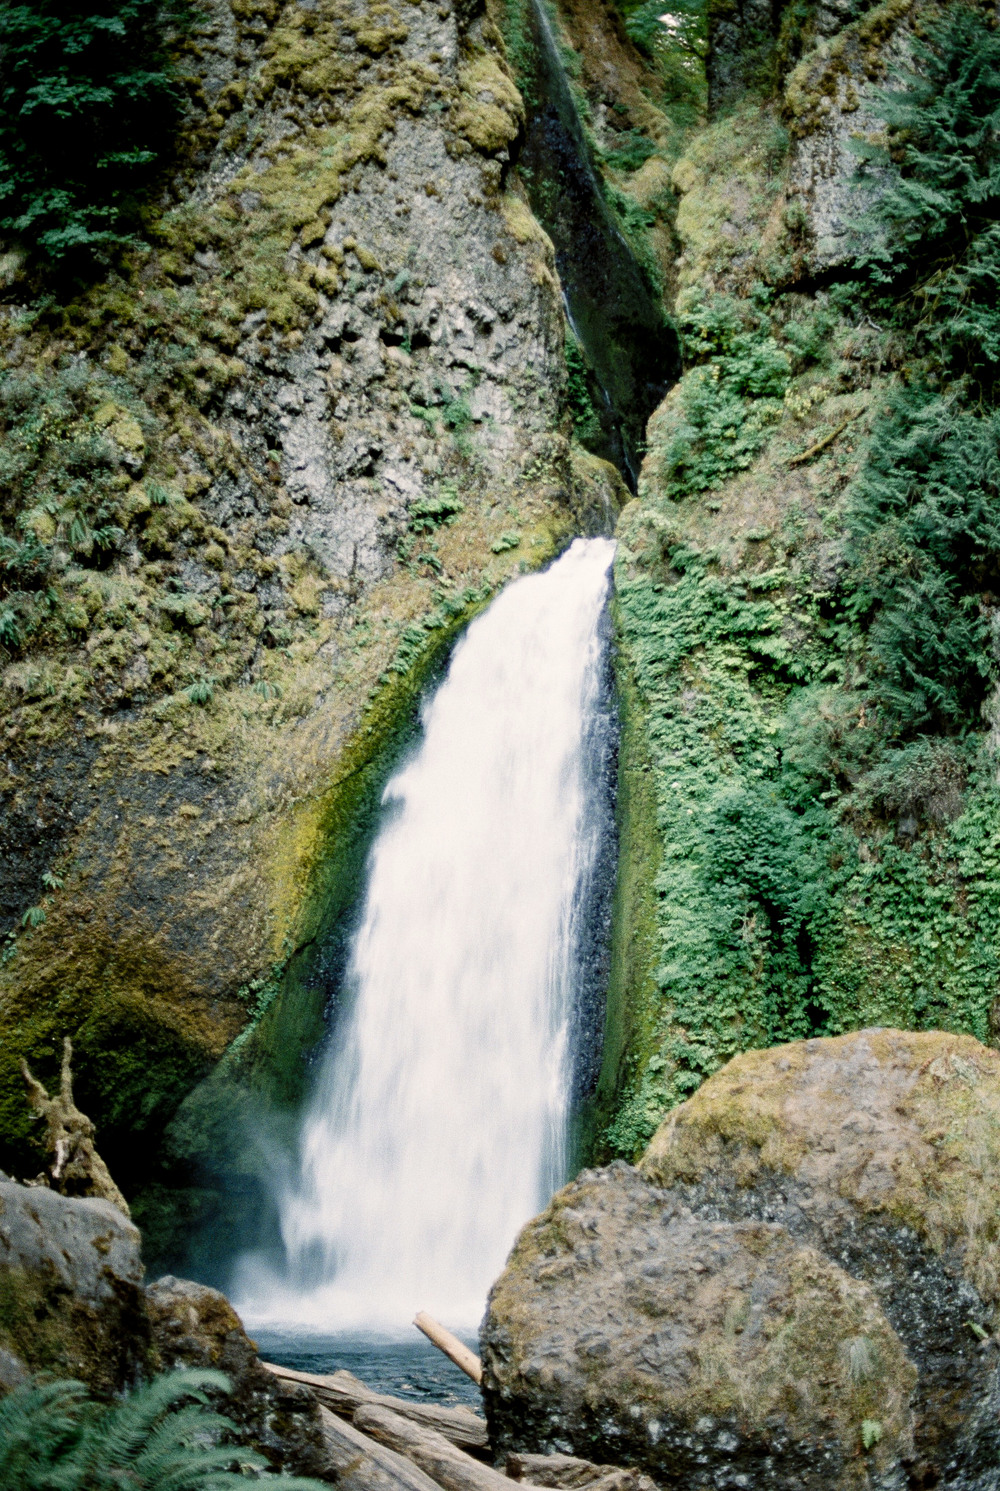 wachella falls - Oregon Elopement Photographer - Oregon Travel - Amanda Lenhardt Photography